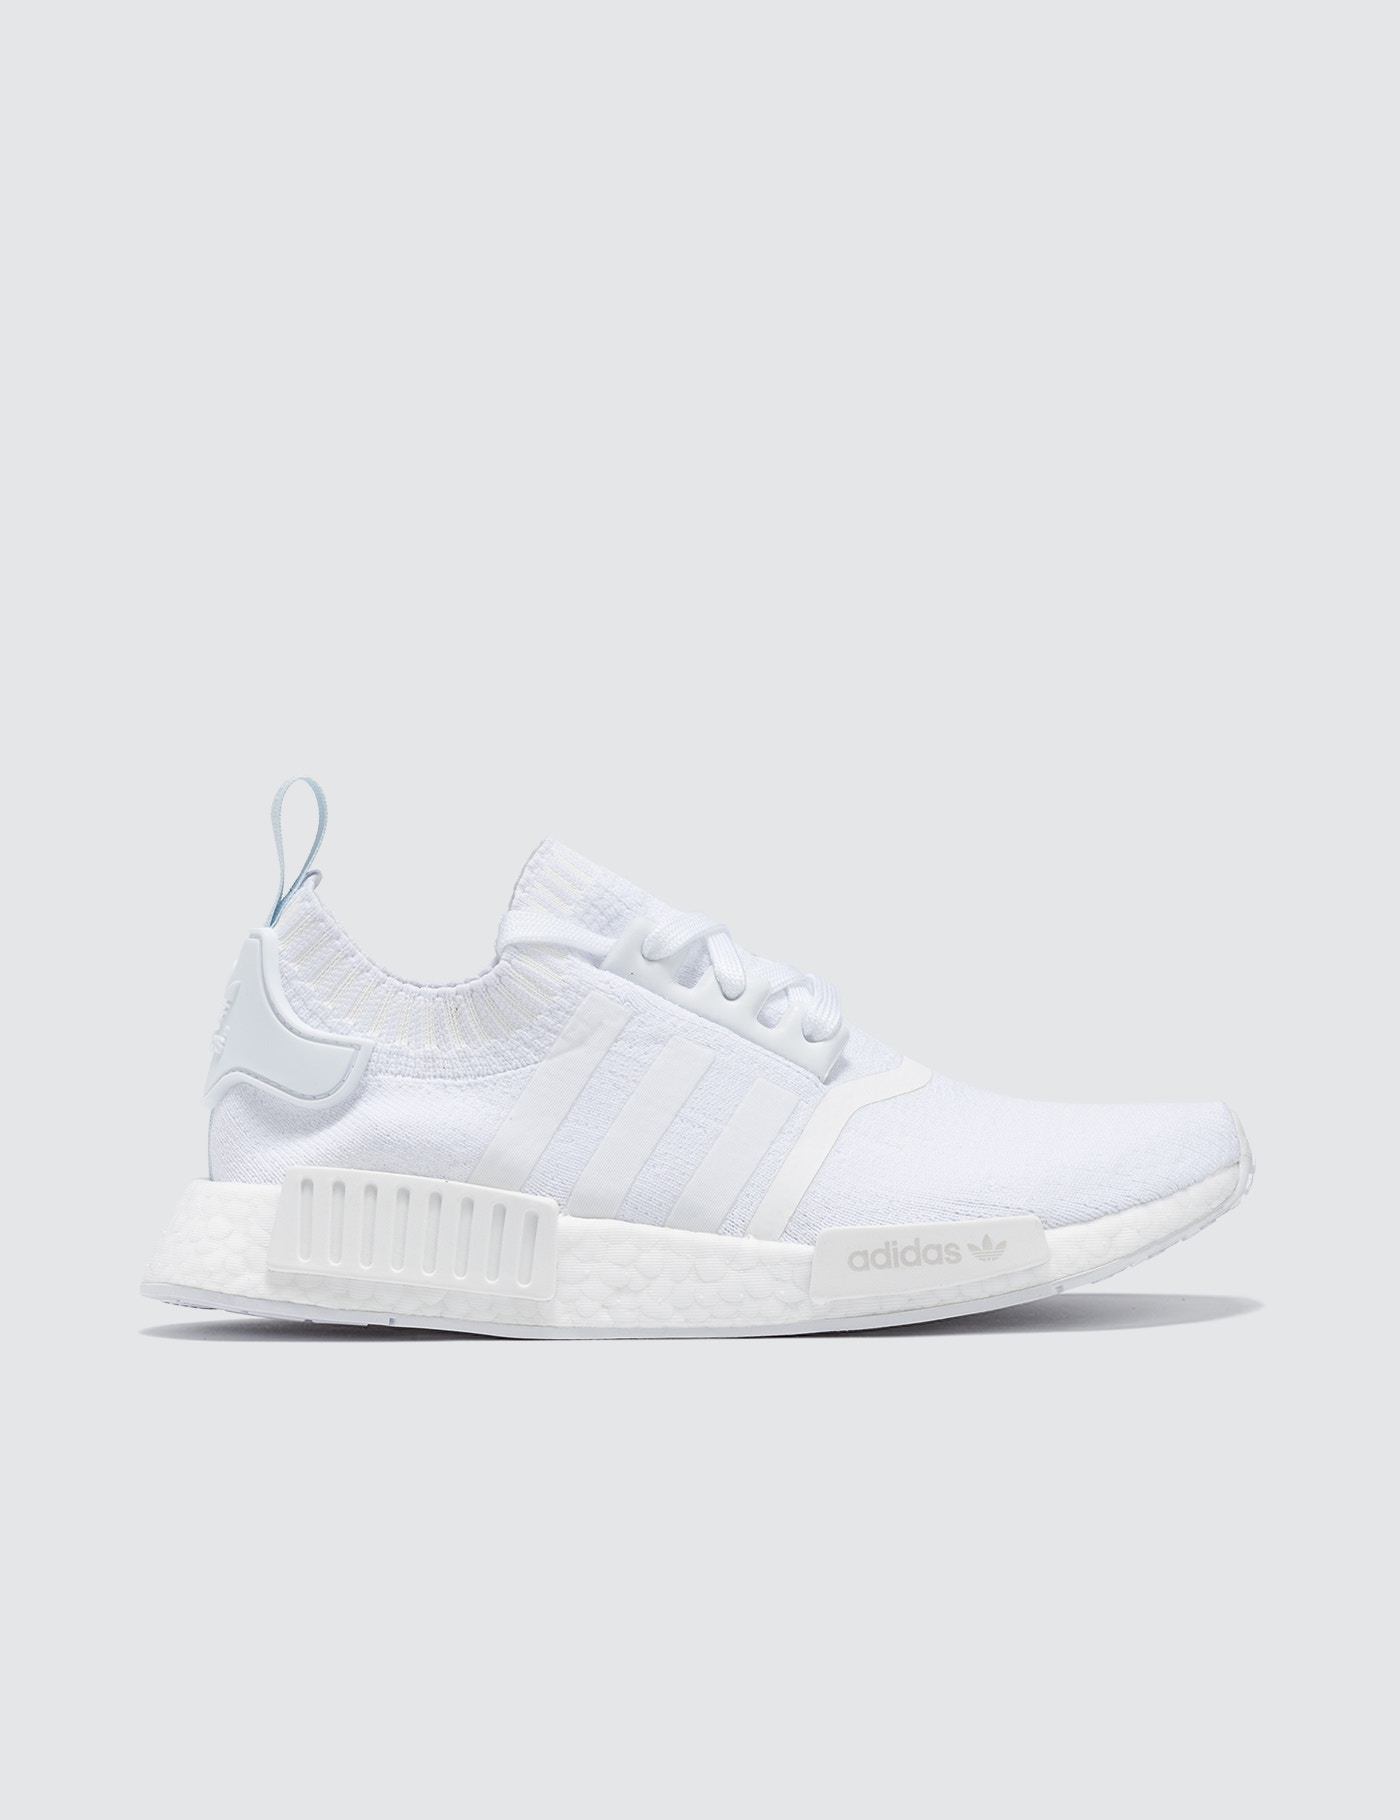 a2e4267180d64 Buy Original Adidas Originals NMD R1 PK W at Indonesia